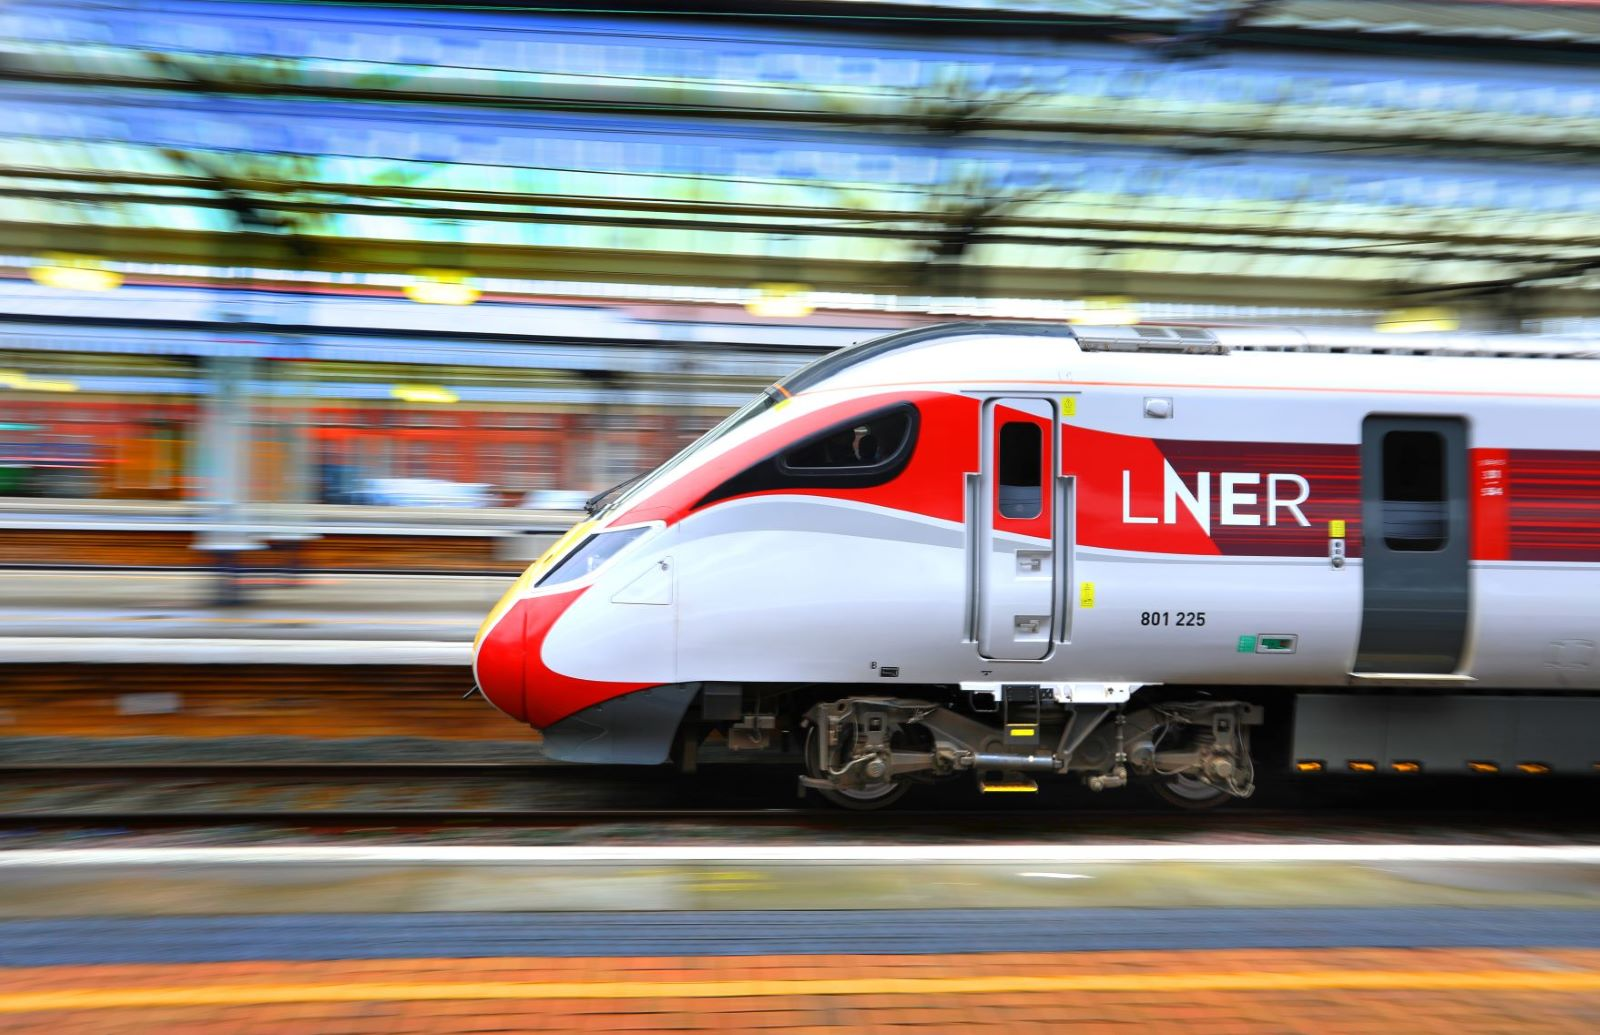 LNER Begins Global Search For Innovation To Ignite Growth In The Rail Industry